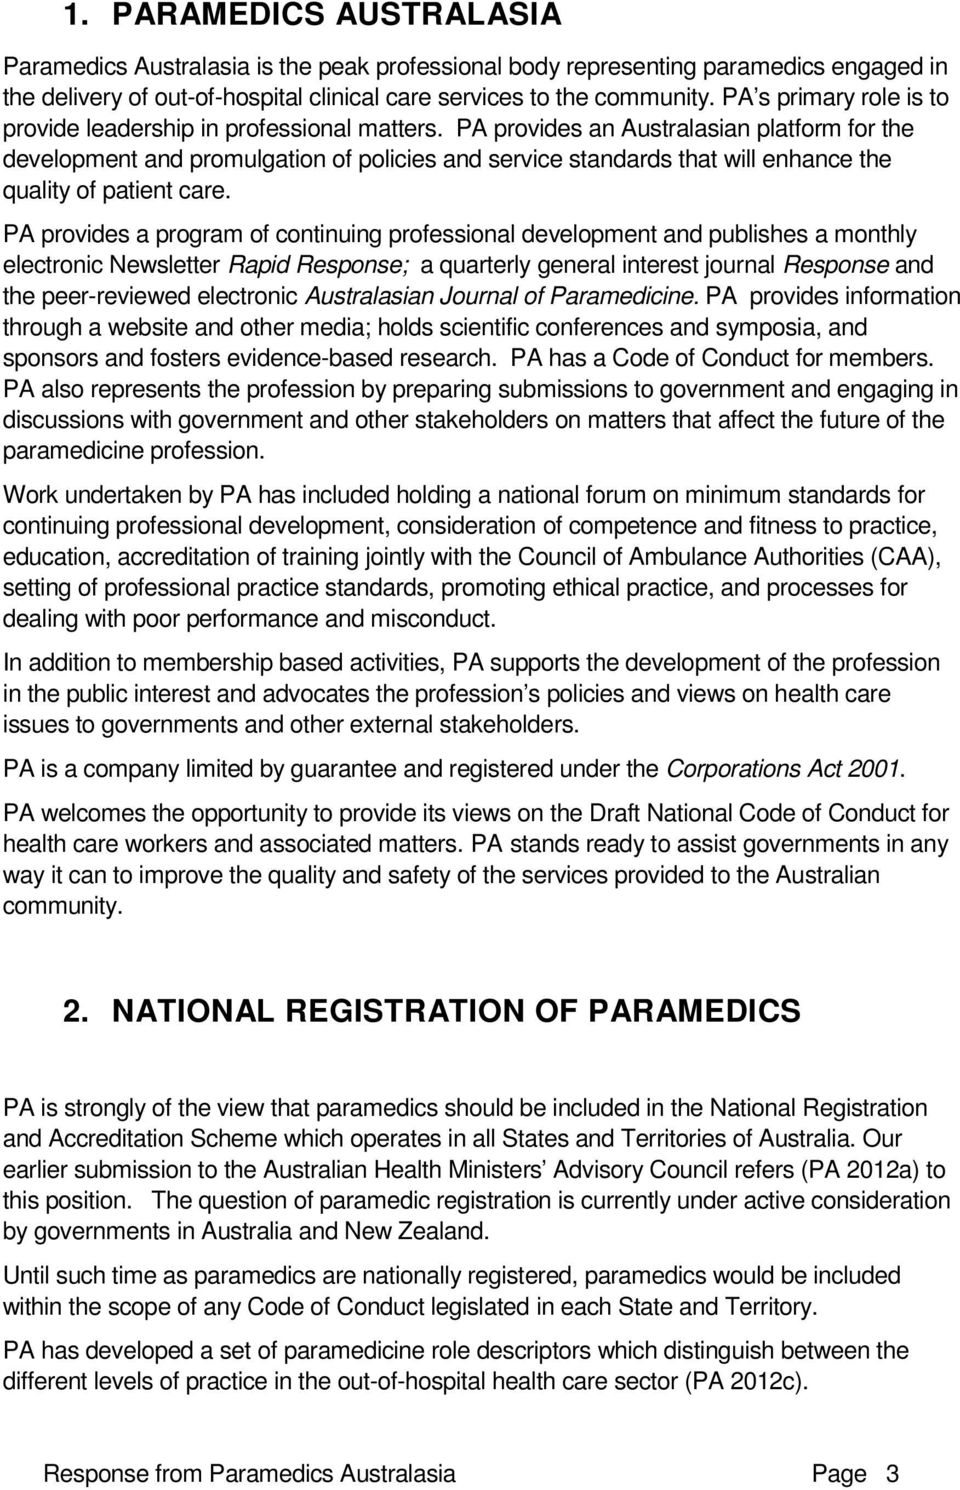 PA provides an Australasian platform for the development and promulgation of policies and service standards that will enhance the quality of patient care.